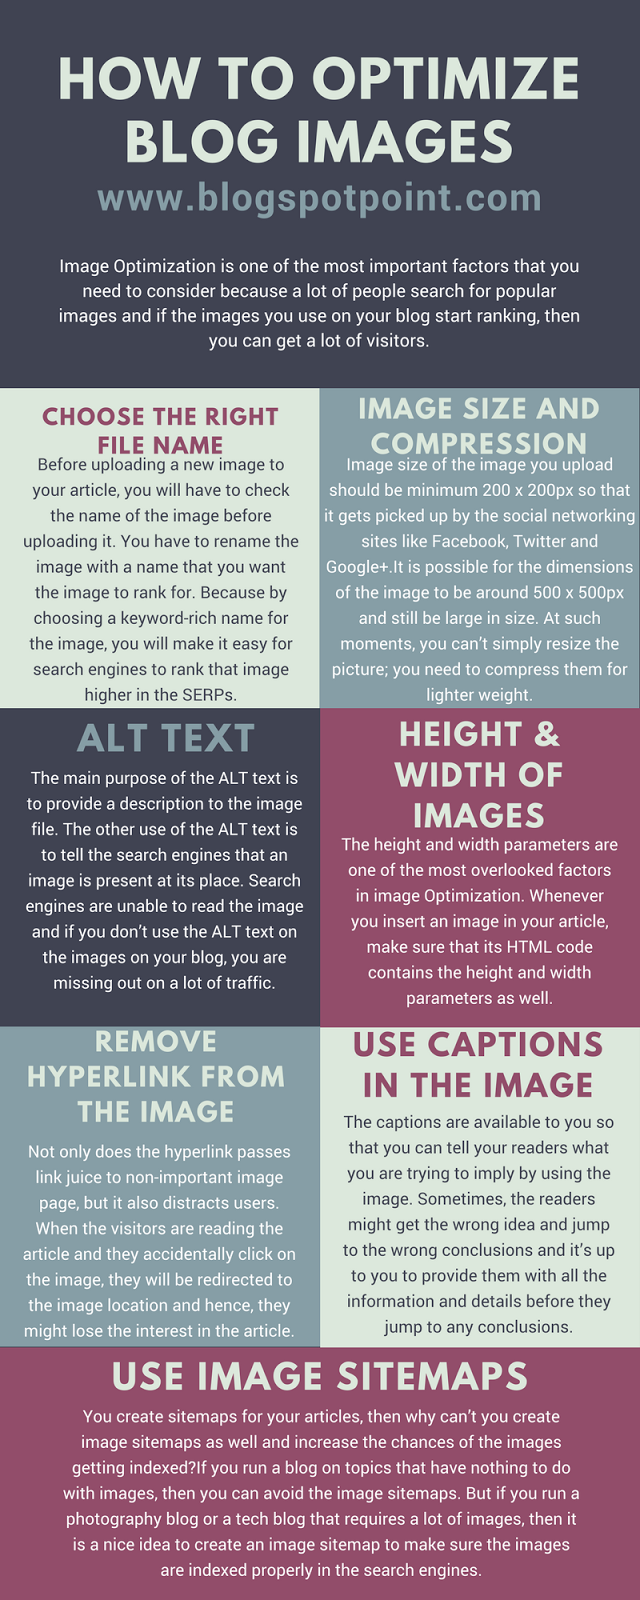 How To Optimize Blog Images To Get A Huge Search Engine Traffic [INFOGRAPHIC]